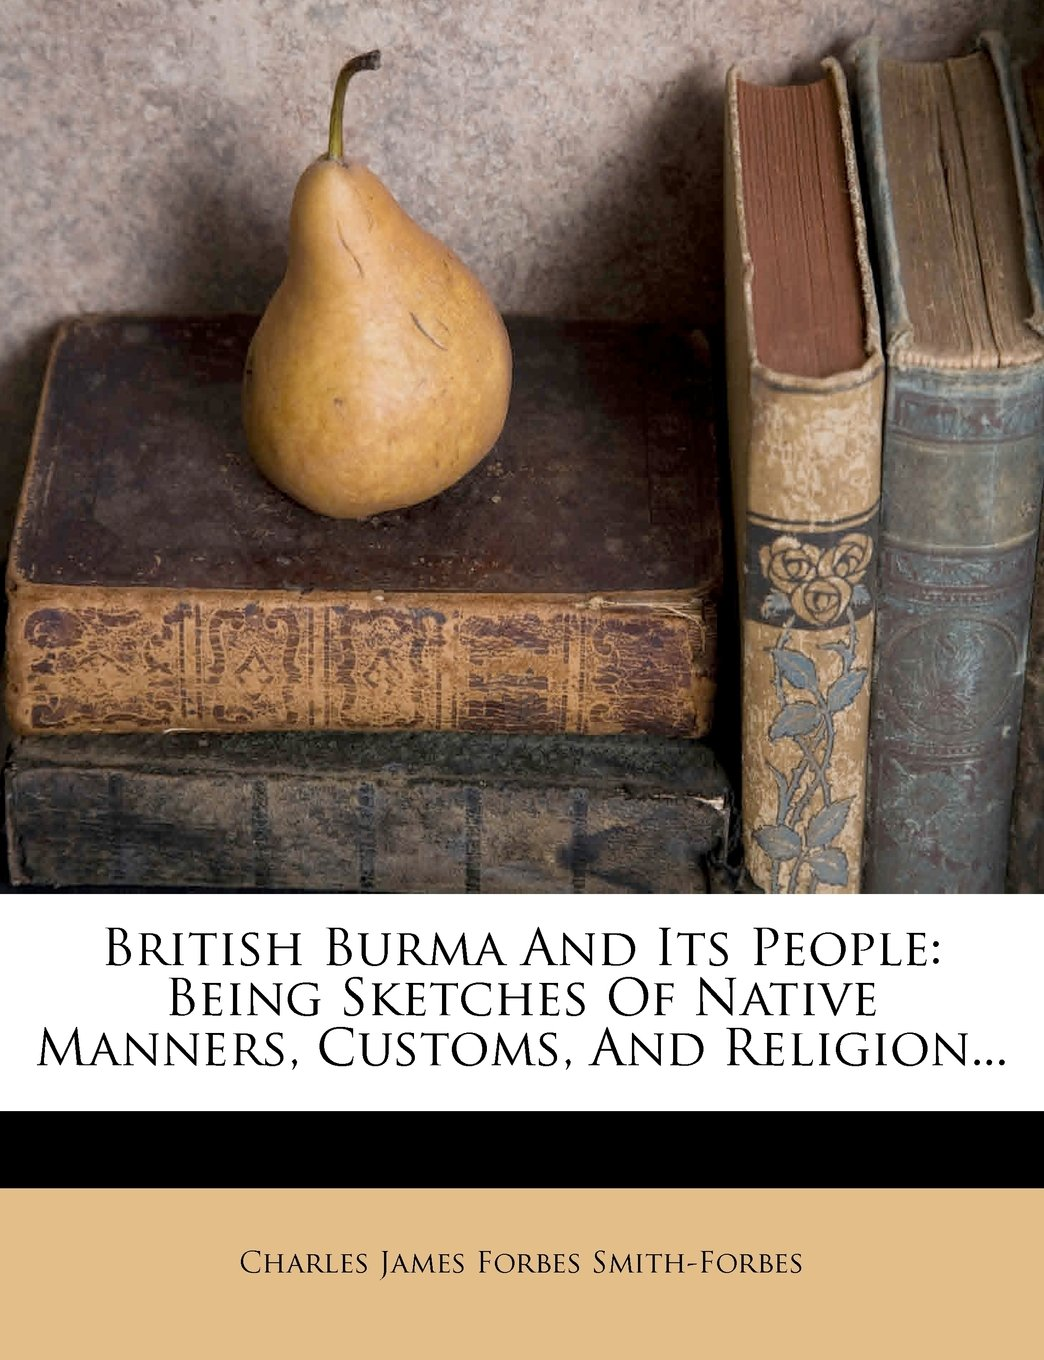 British Burma And Its People: Being Sketches Of Native Manners, Customs, And Religion... PDF